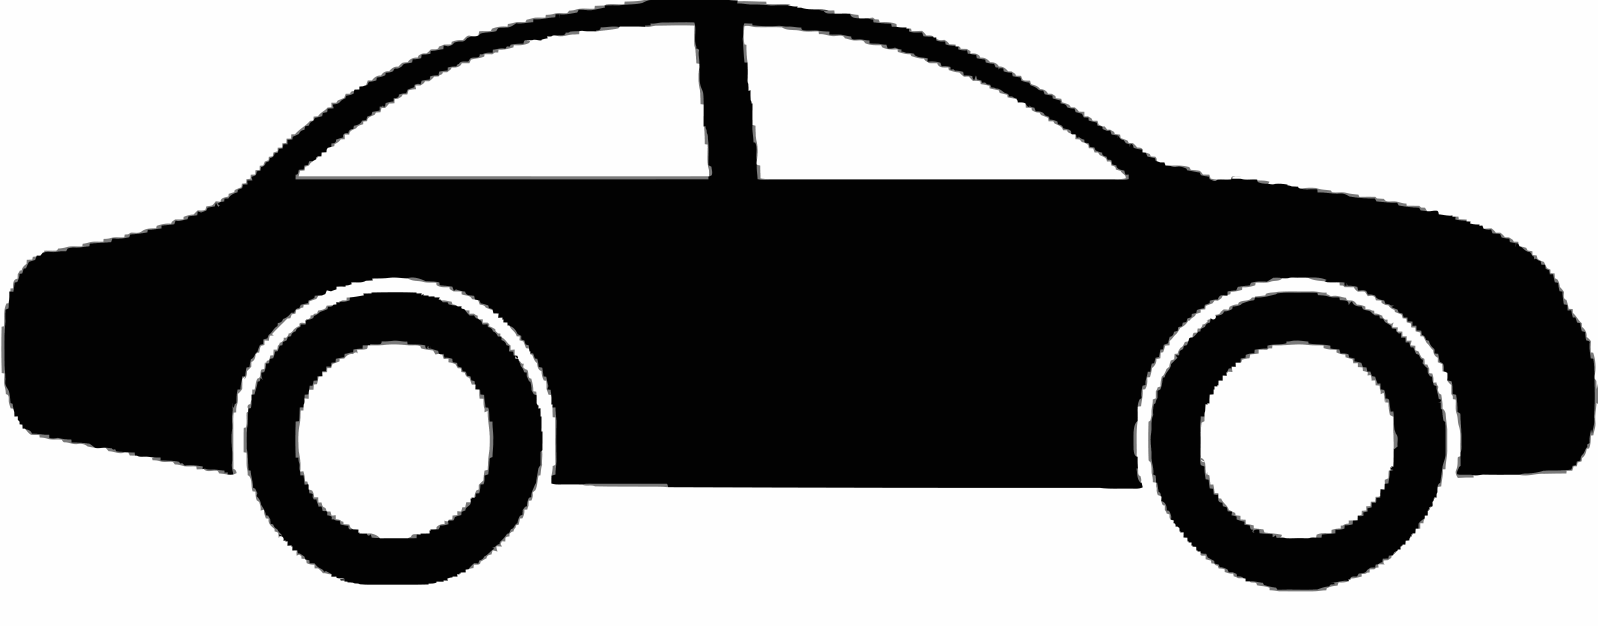 clipart car silhouette at getdrawings com free for personal use rh getdrawings com car clipart images black and white antique car clipart images